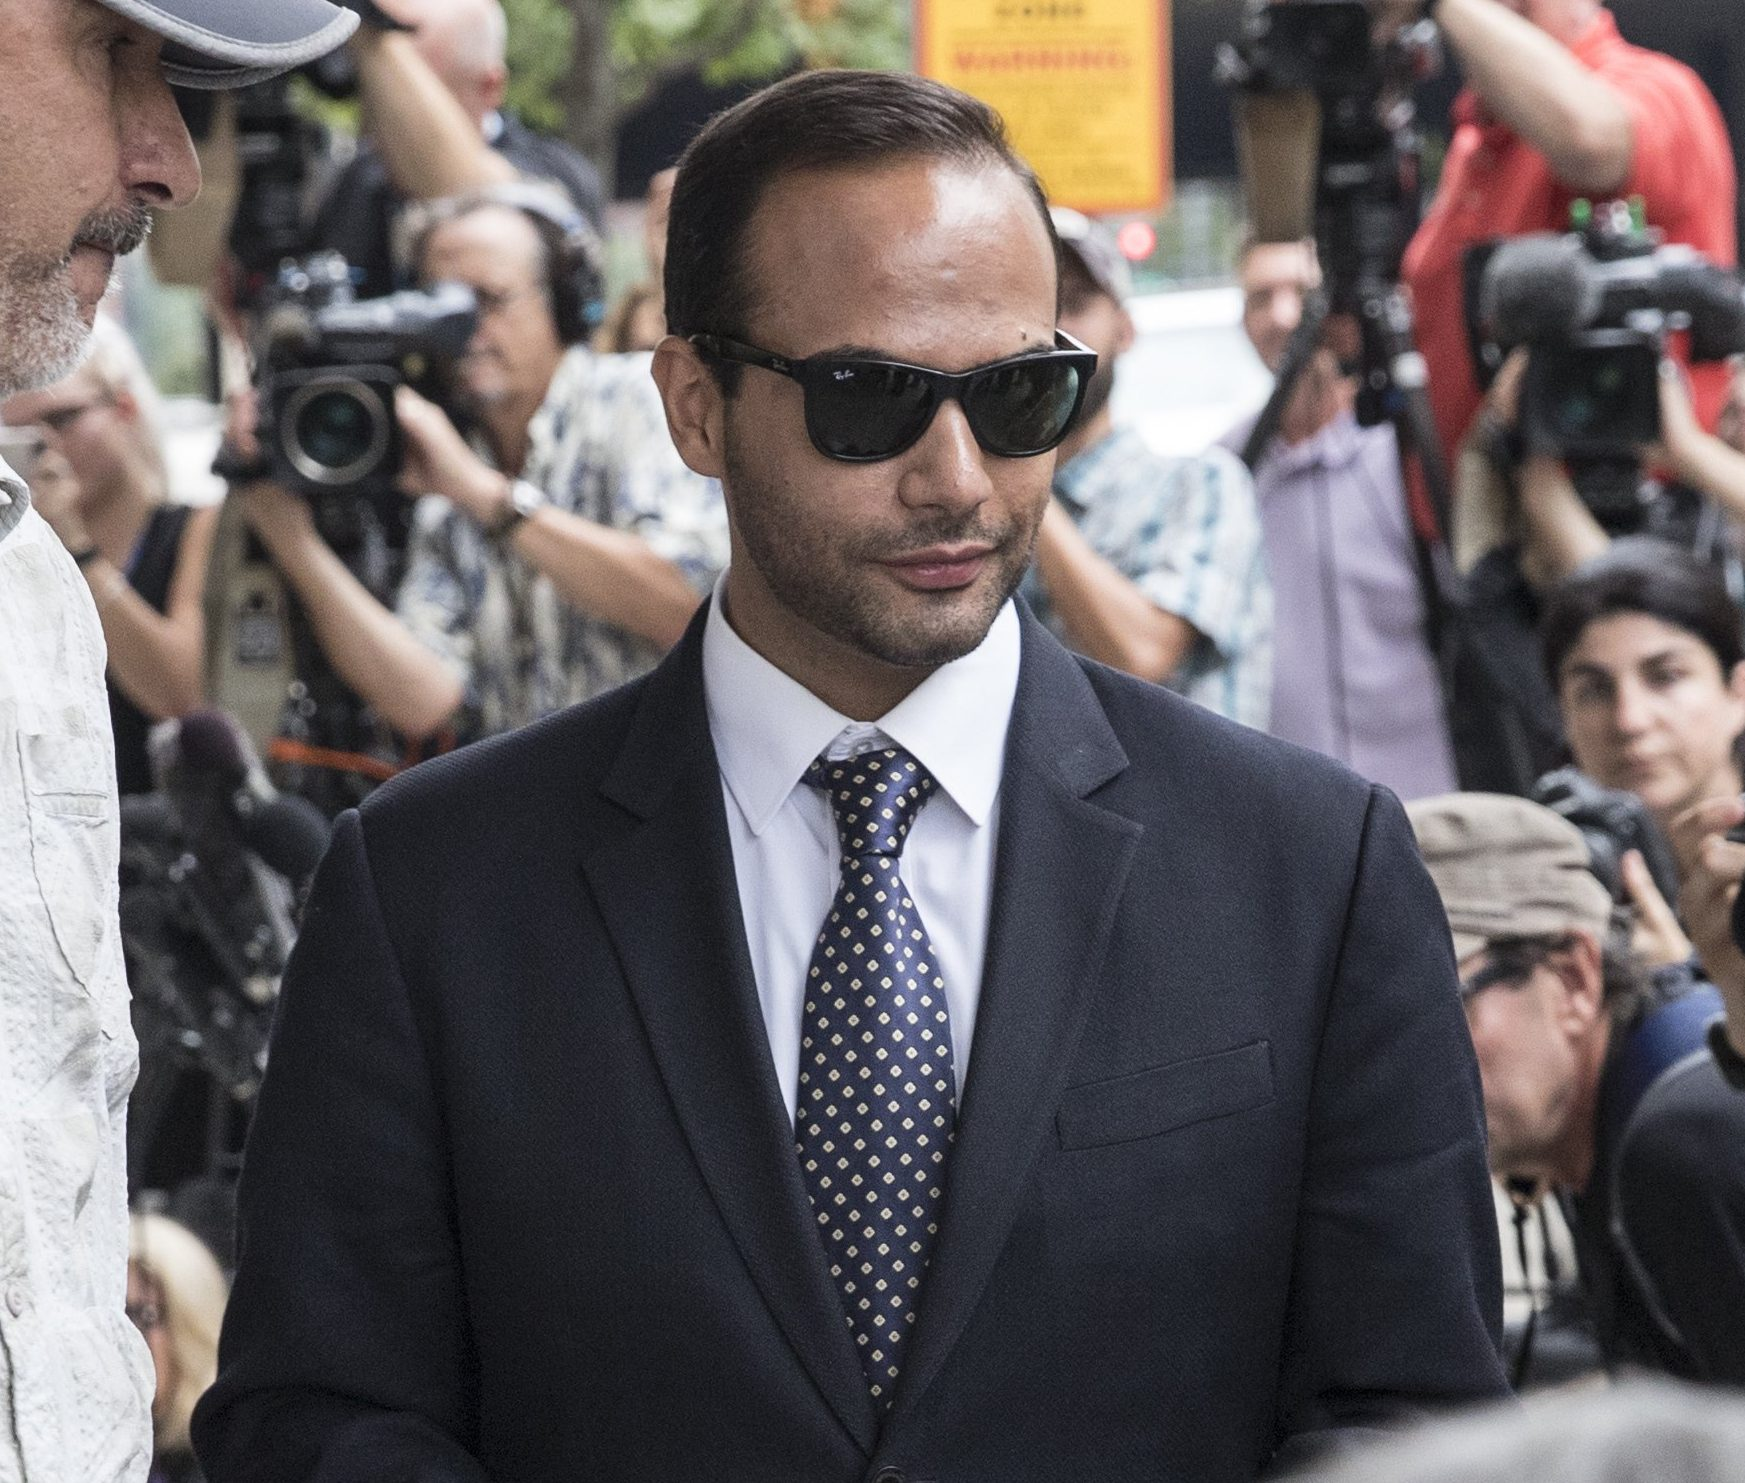 "WASHINGTON, DC - SEPTEMBER 07: Former Trump Campaign aide George Papadopoulos leaves the U.S. District Court after his sentencing hearing on September 7, 2018 in Washington, DC. Papadopoulos pleaded guilty last year for making a ""materially false, fictitious and fraudulent statement"" to investigators during FBI's probe of Russian interference during the 2016 presidential election. (Photo by Alex Wroblewski/Getty Images) ***BESTPIX***"